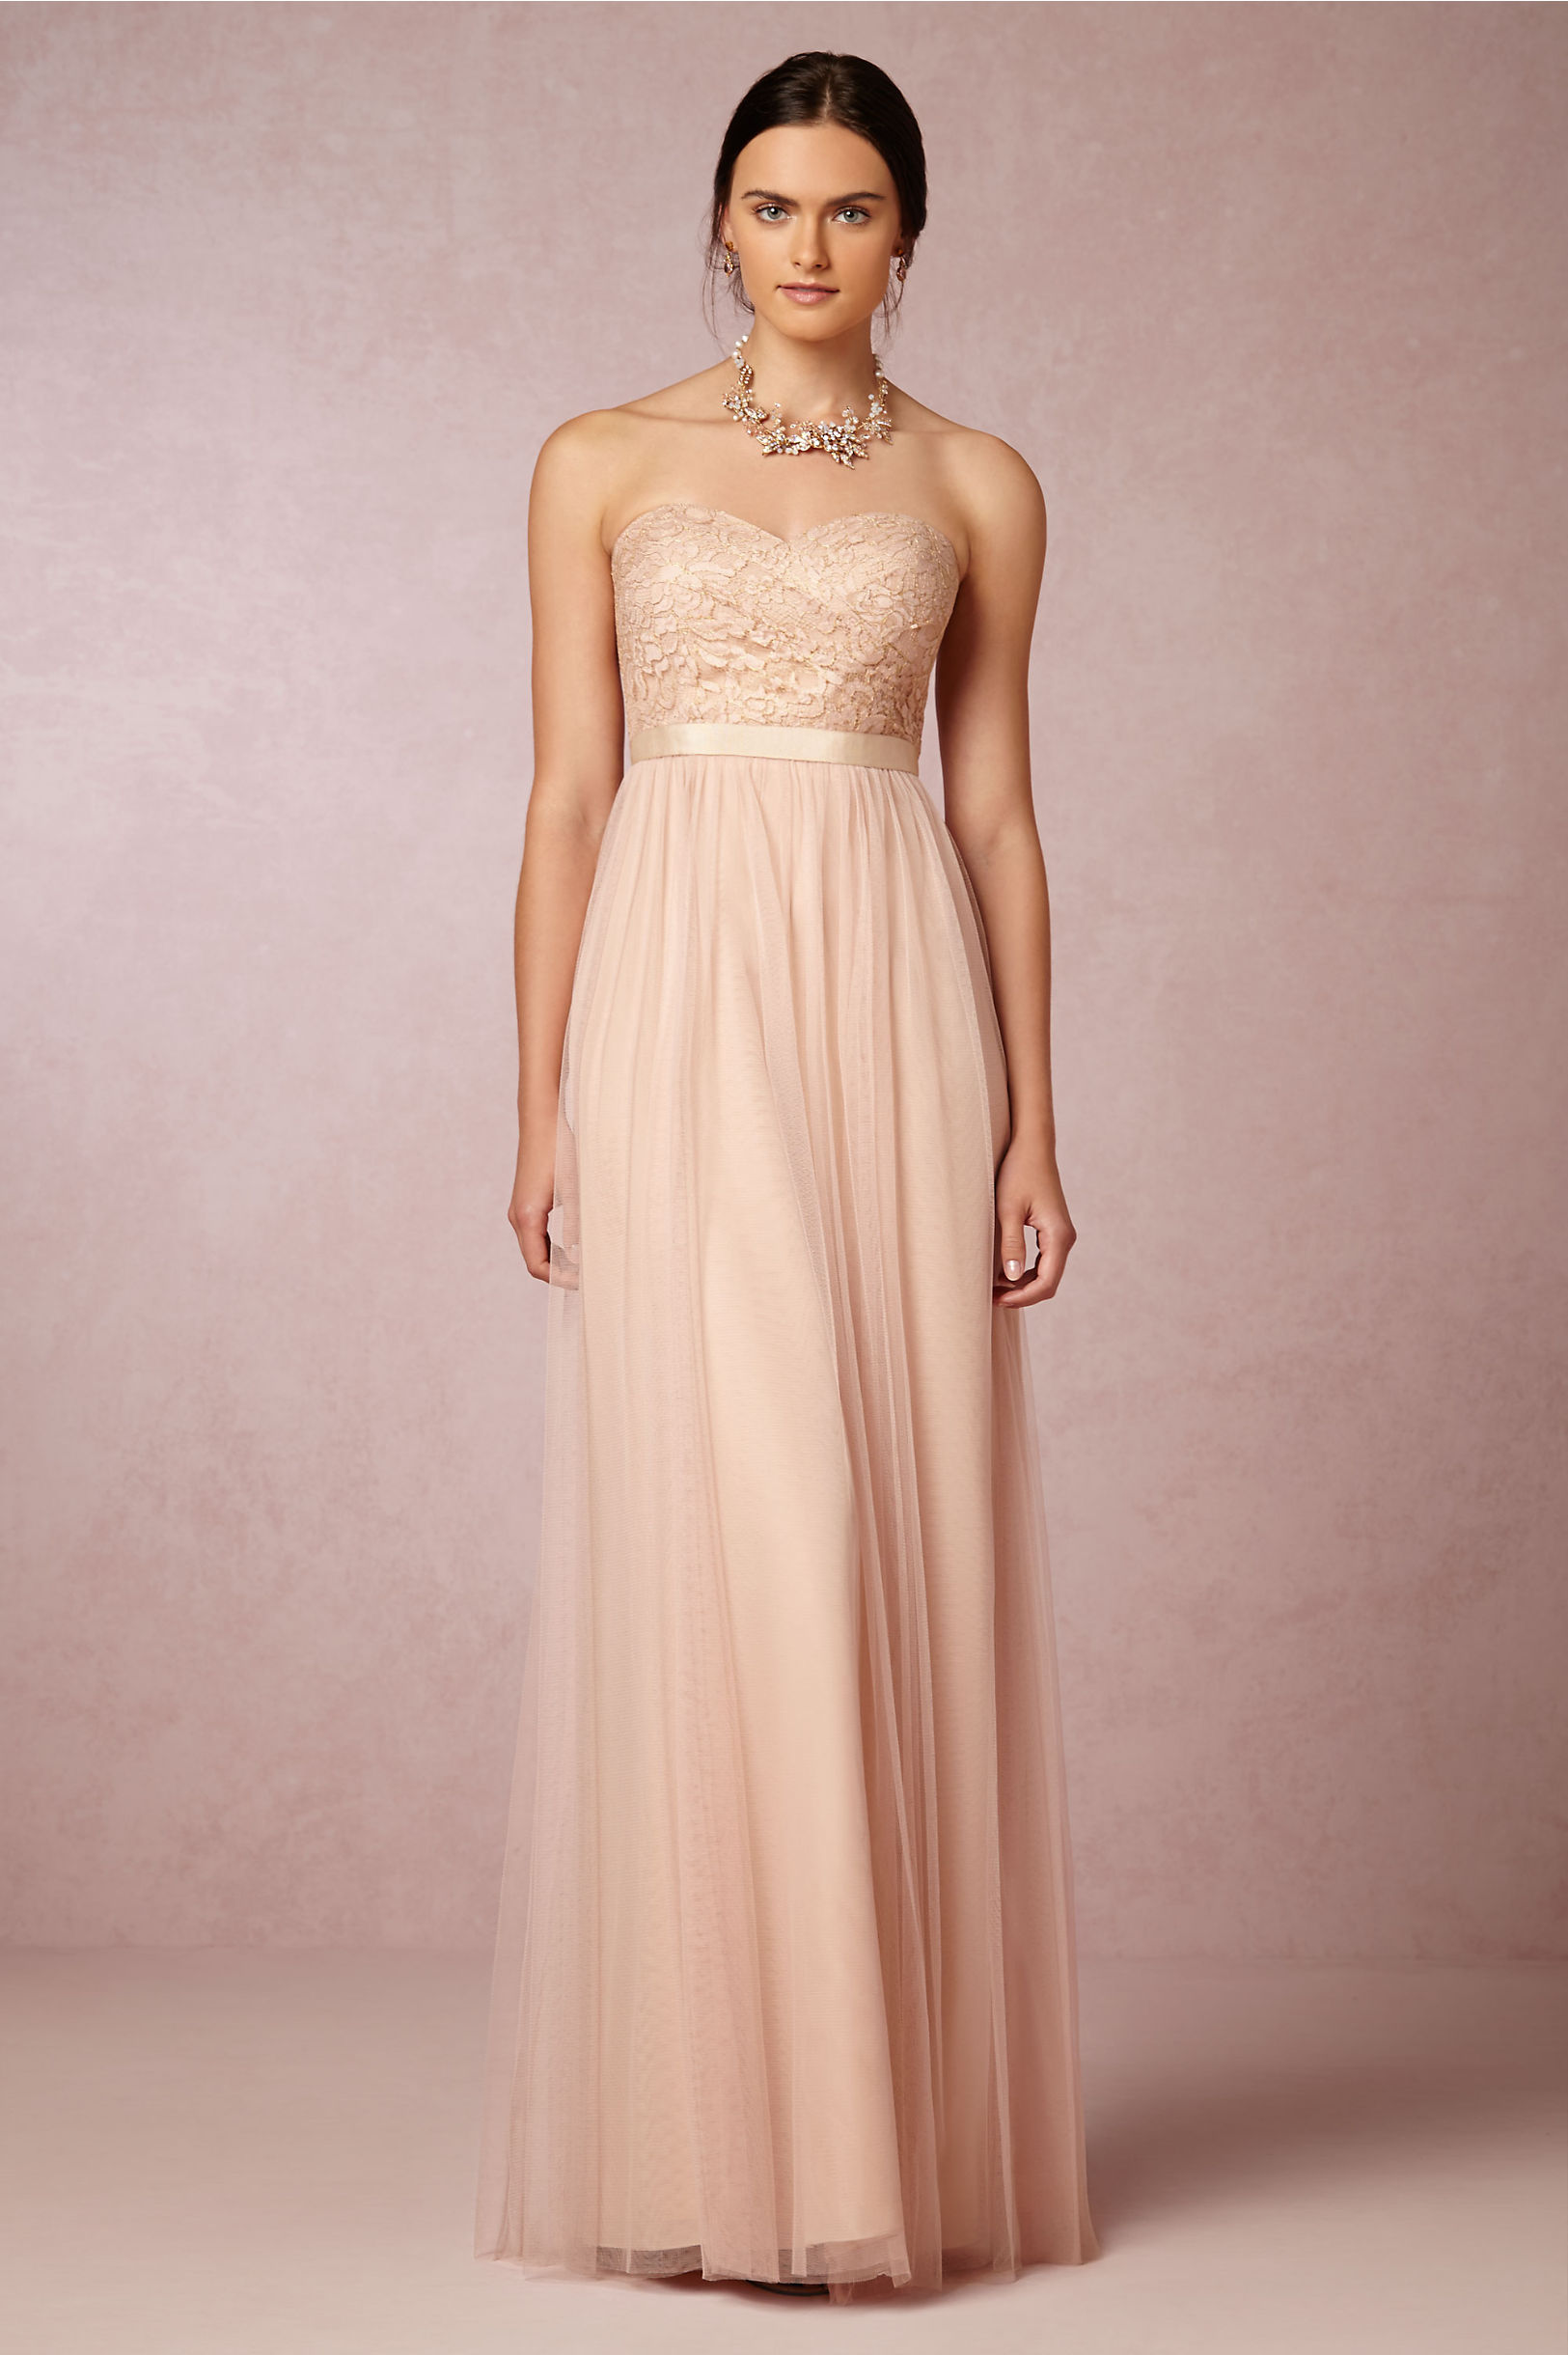 Juliette dress in bridal party bhldn jenny yoo cameo pink juliette dress bhldn ombrellifo Image collections